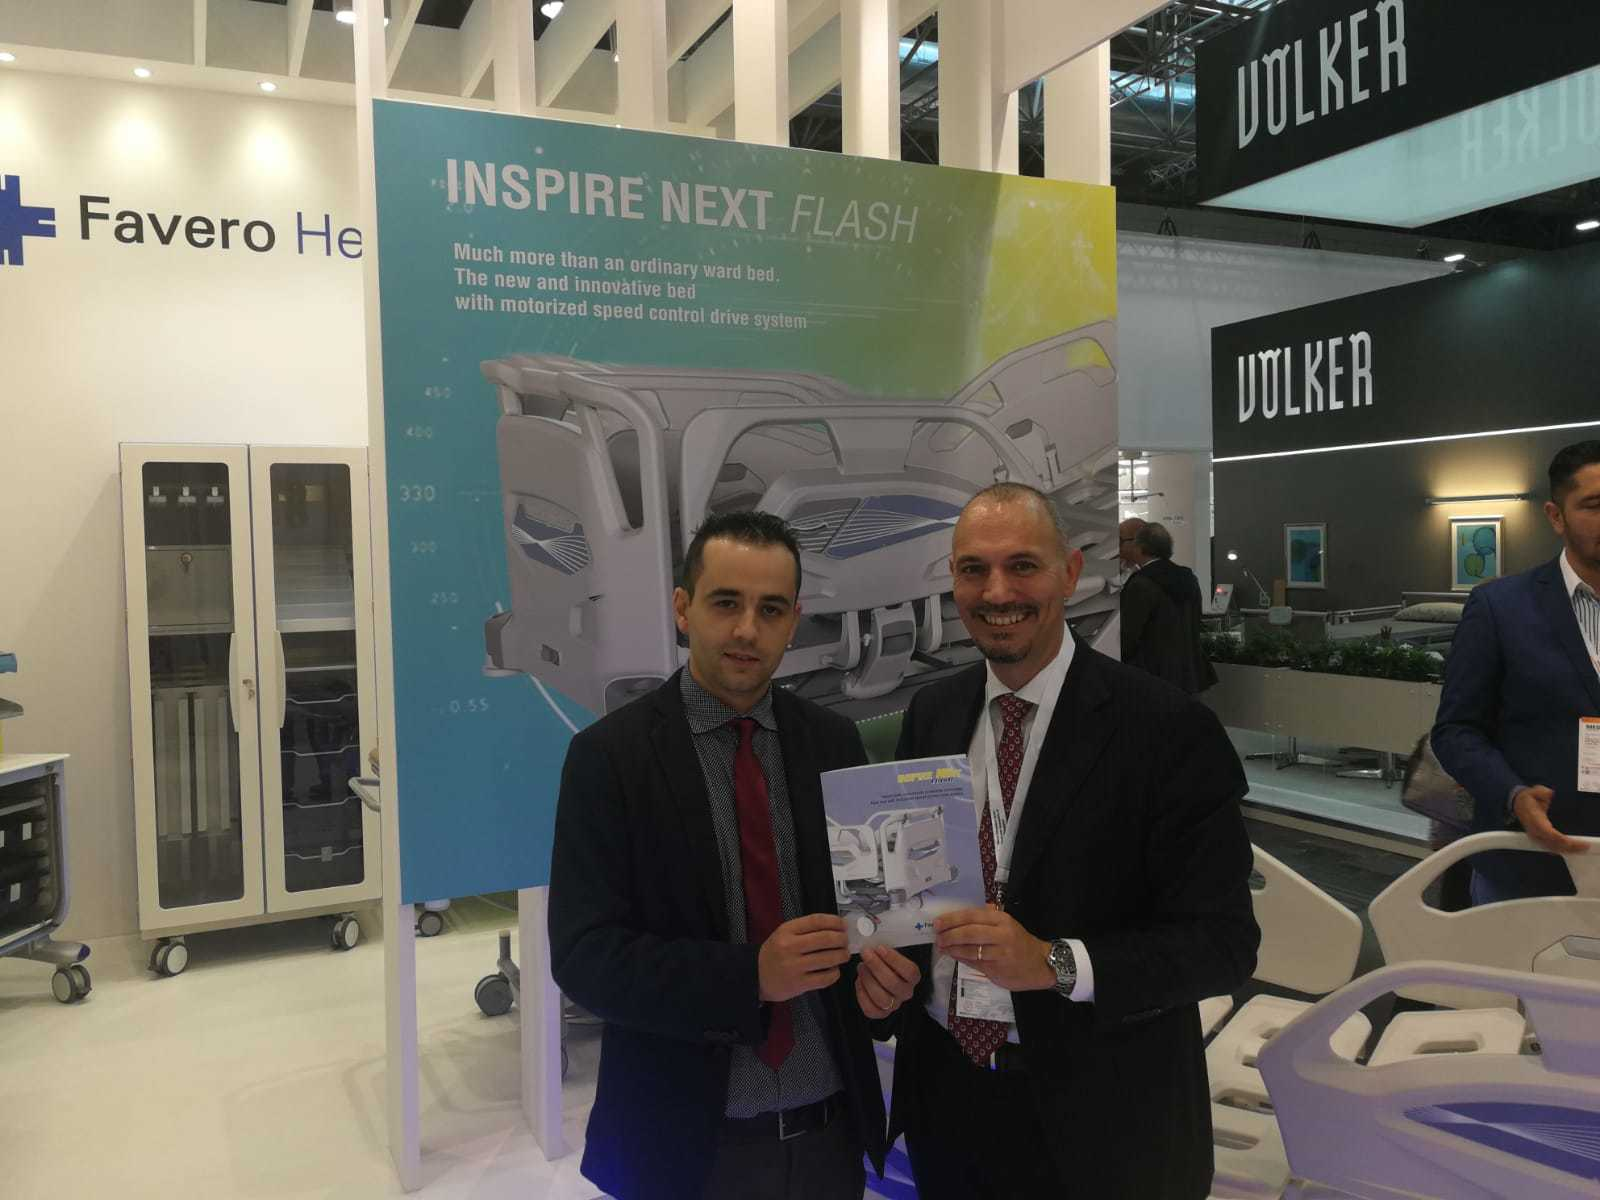 Favero Inspires Next Generation of Antimicrobial Hospital Beds at Medica 2018